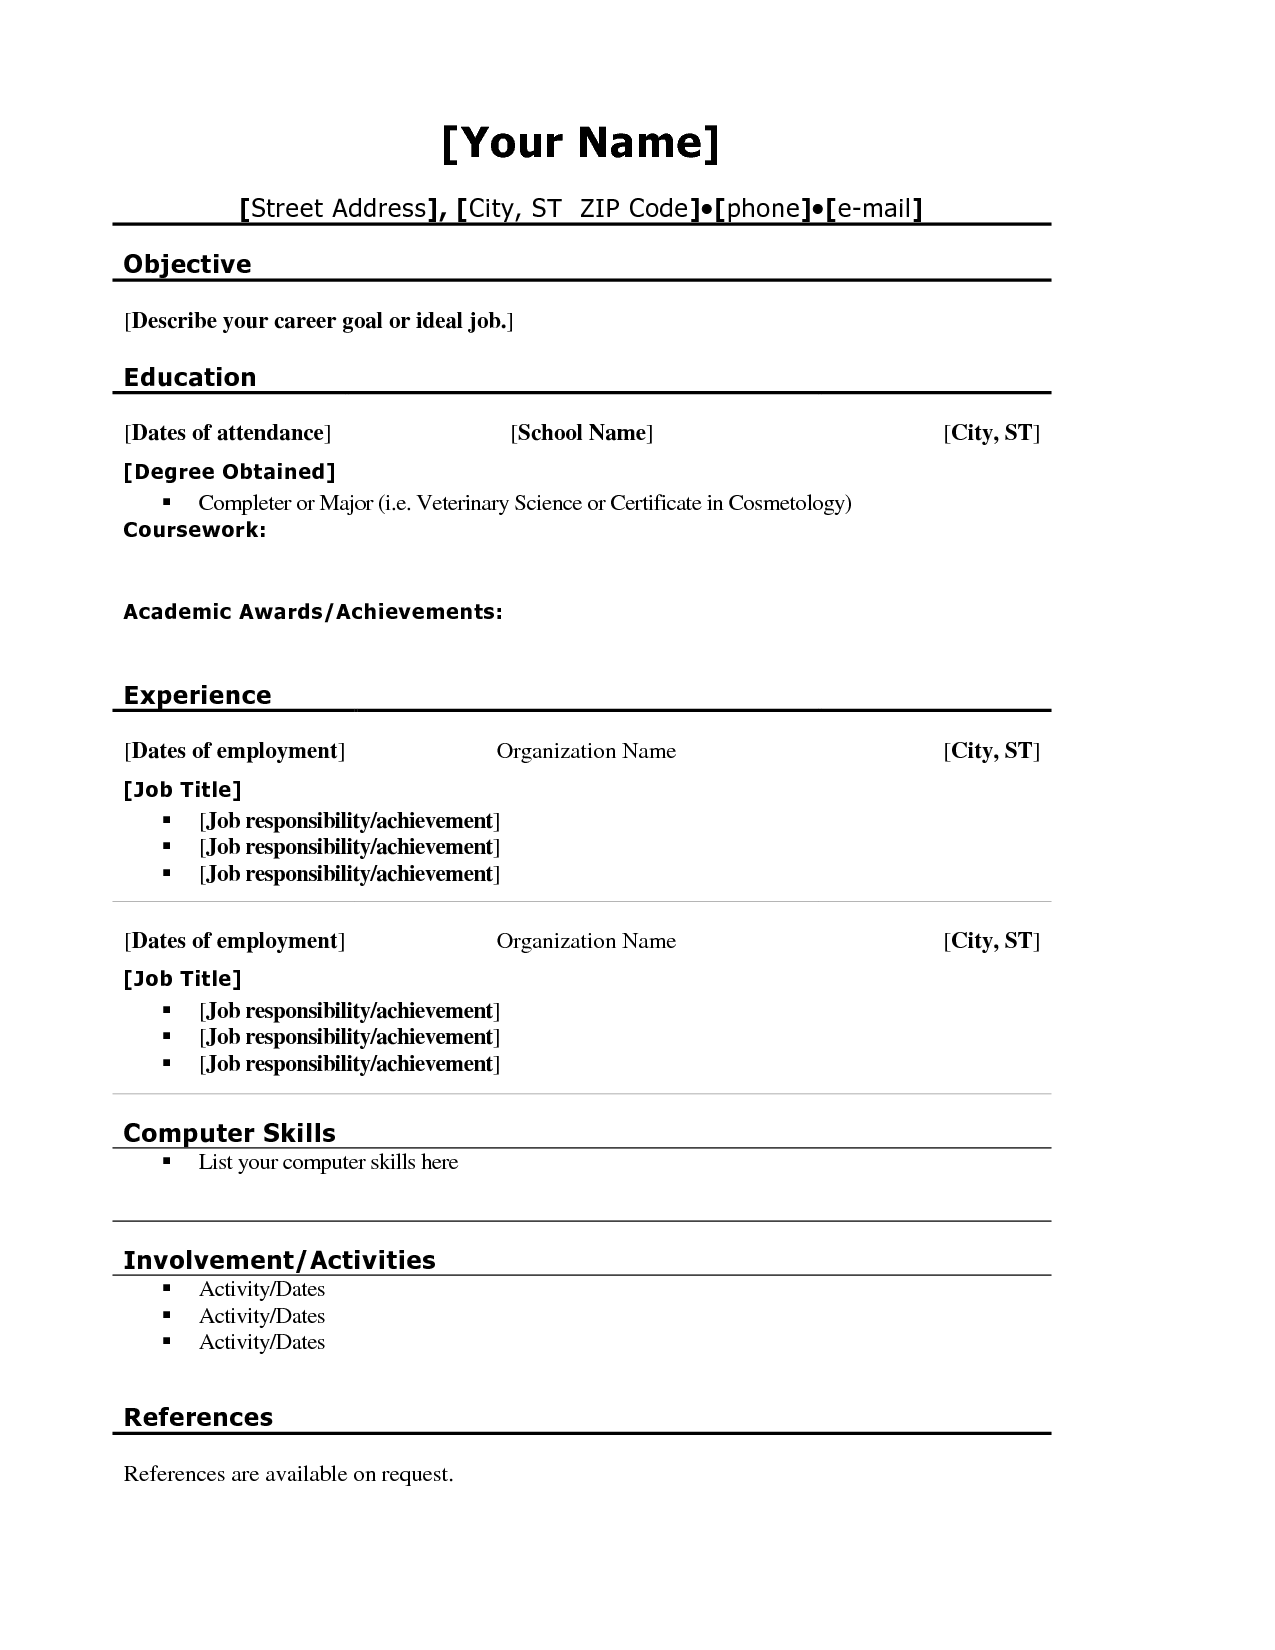 Resume Format For Teachers Httpwww.teachersresumes.au Whether You Are Requisitioning .